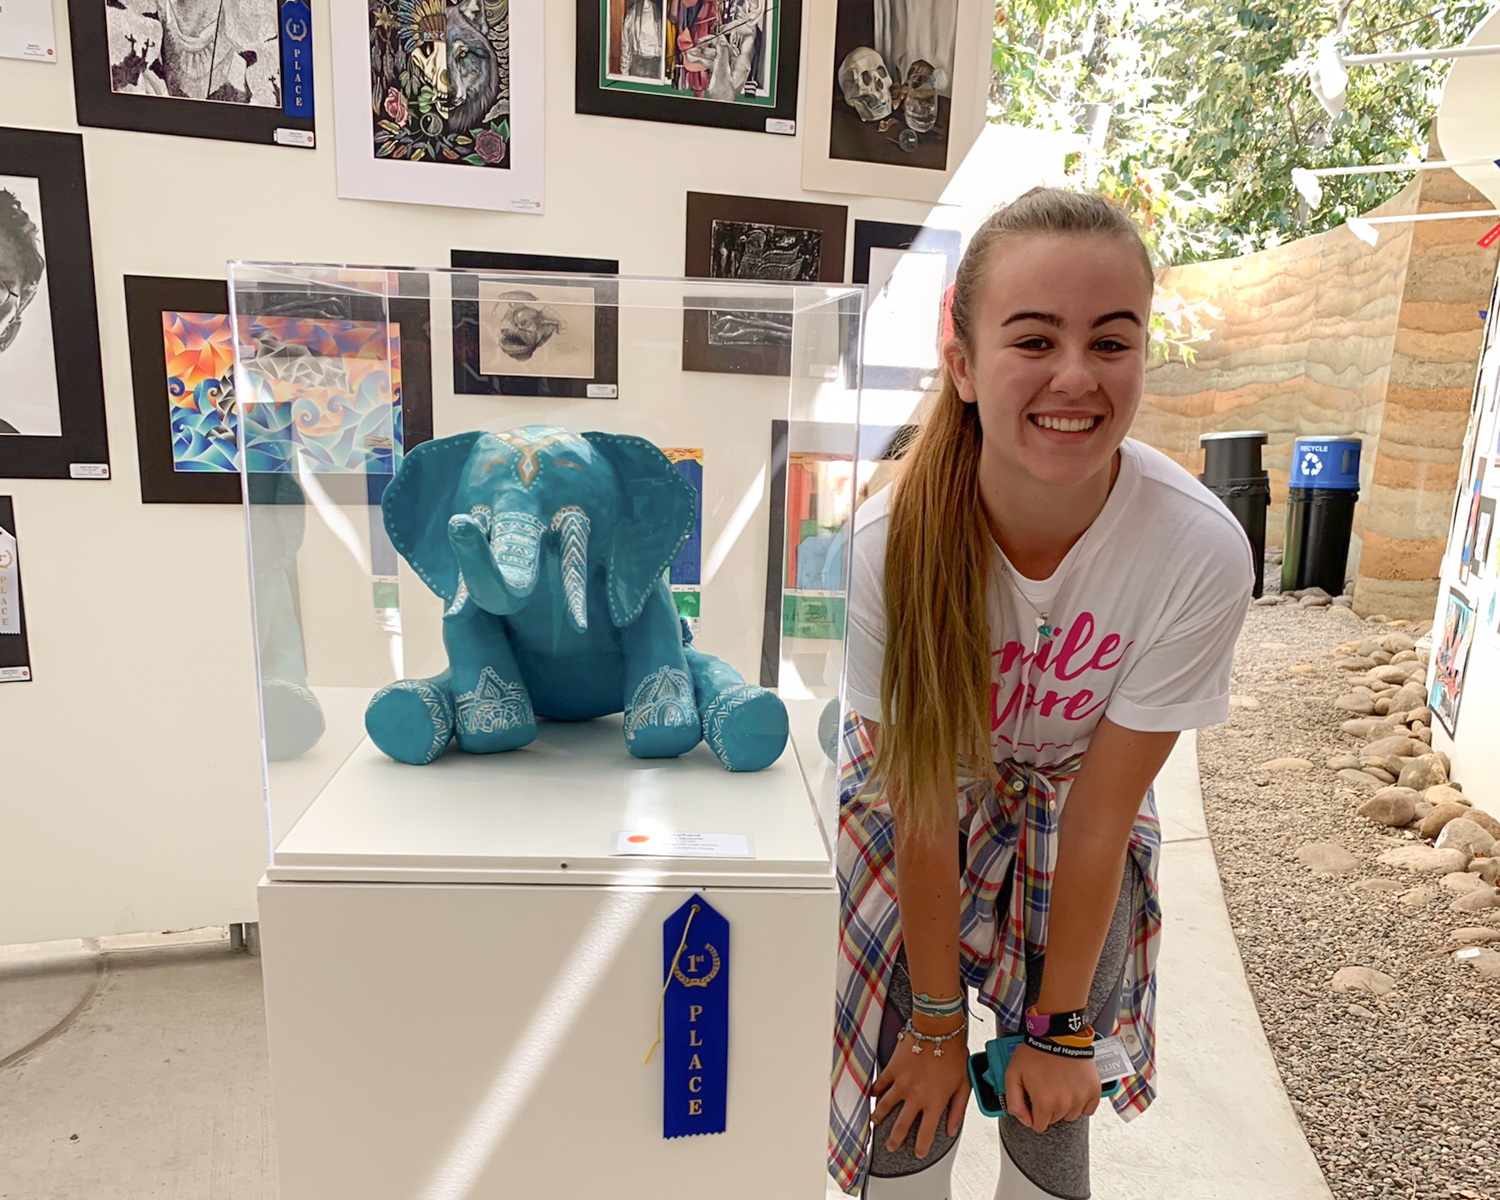 Proud of her award-winning art, Mulvihill stands next to her displayed work.